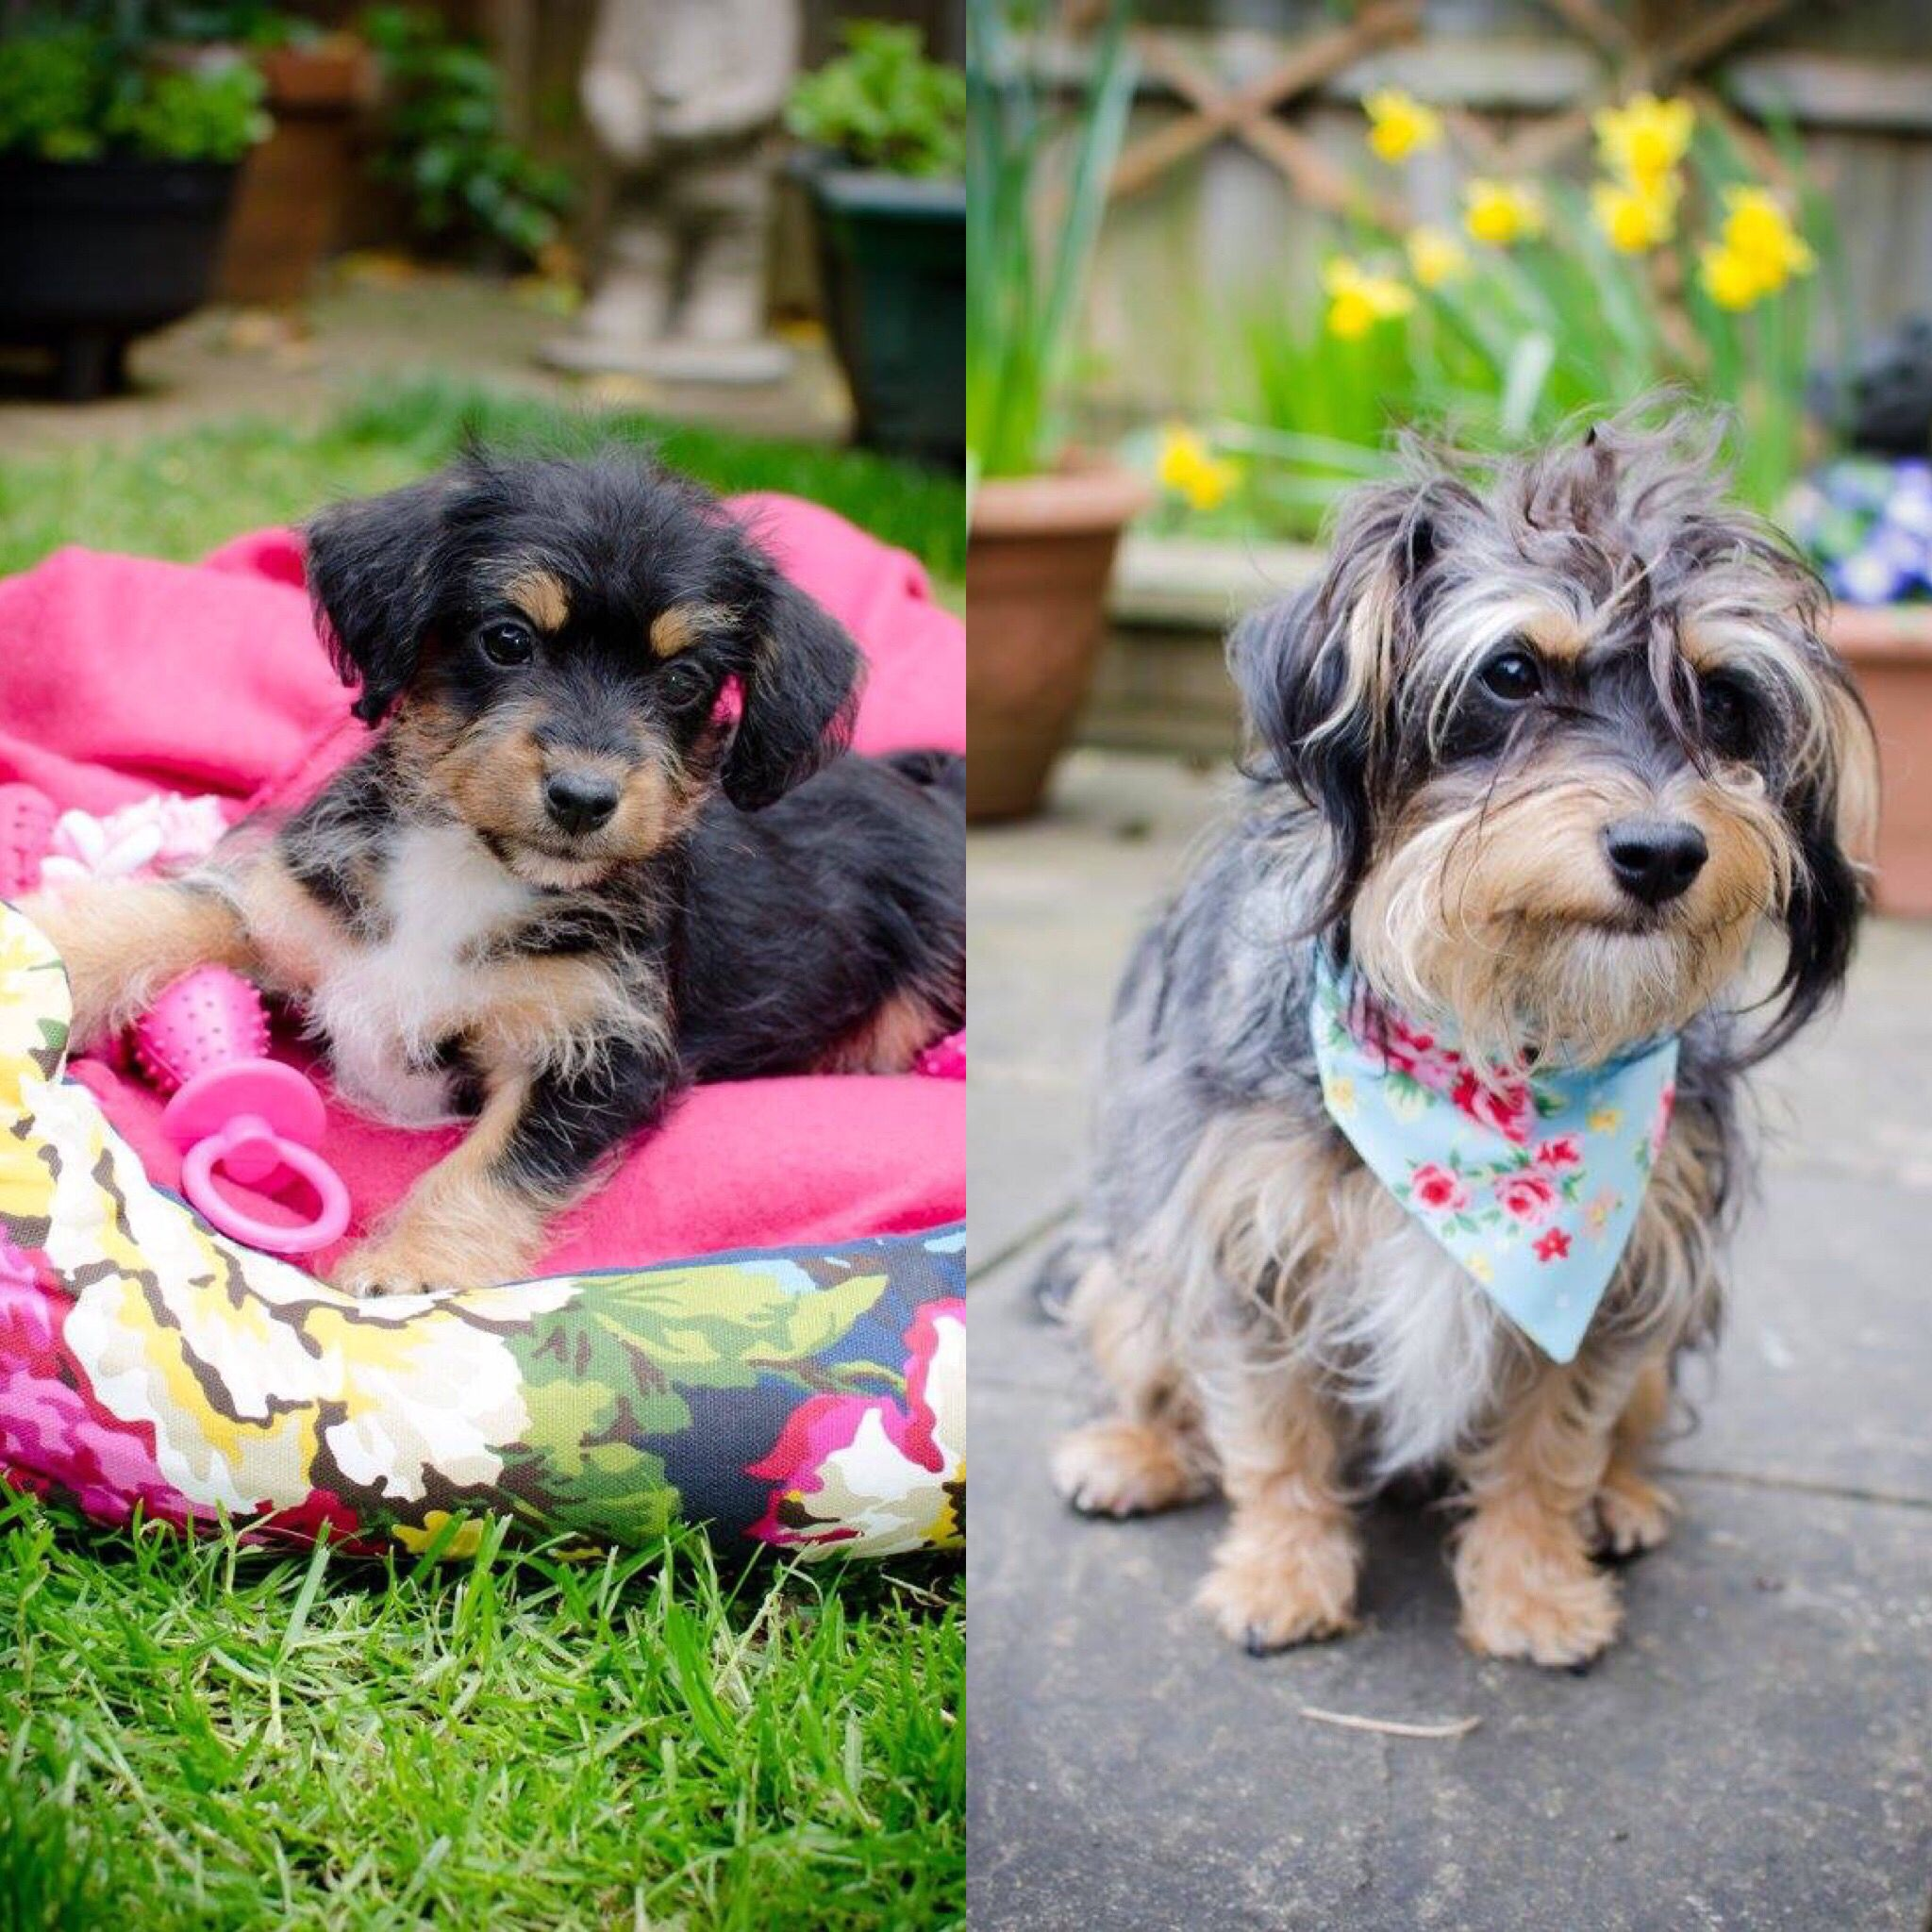 What A Jackapoo Dog Looks Like 8weeks Old And 1year Old Dogs Puppies Dogs And Puppies